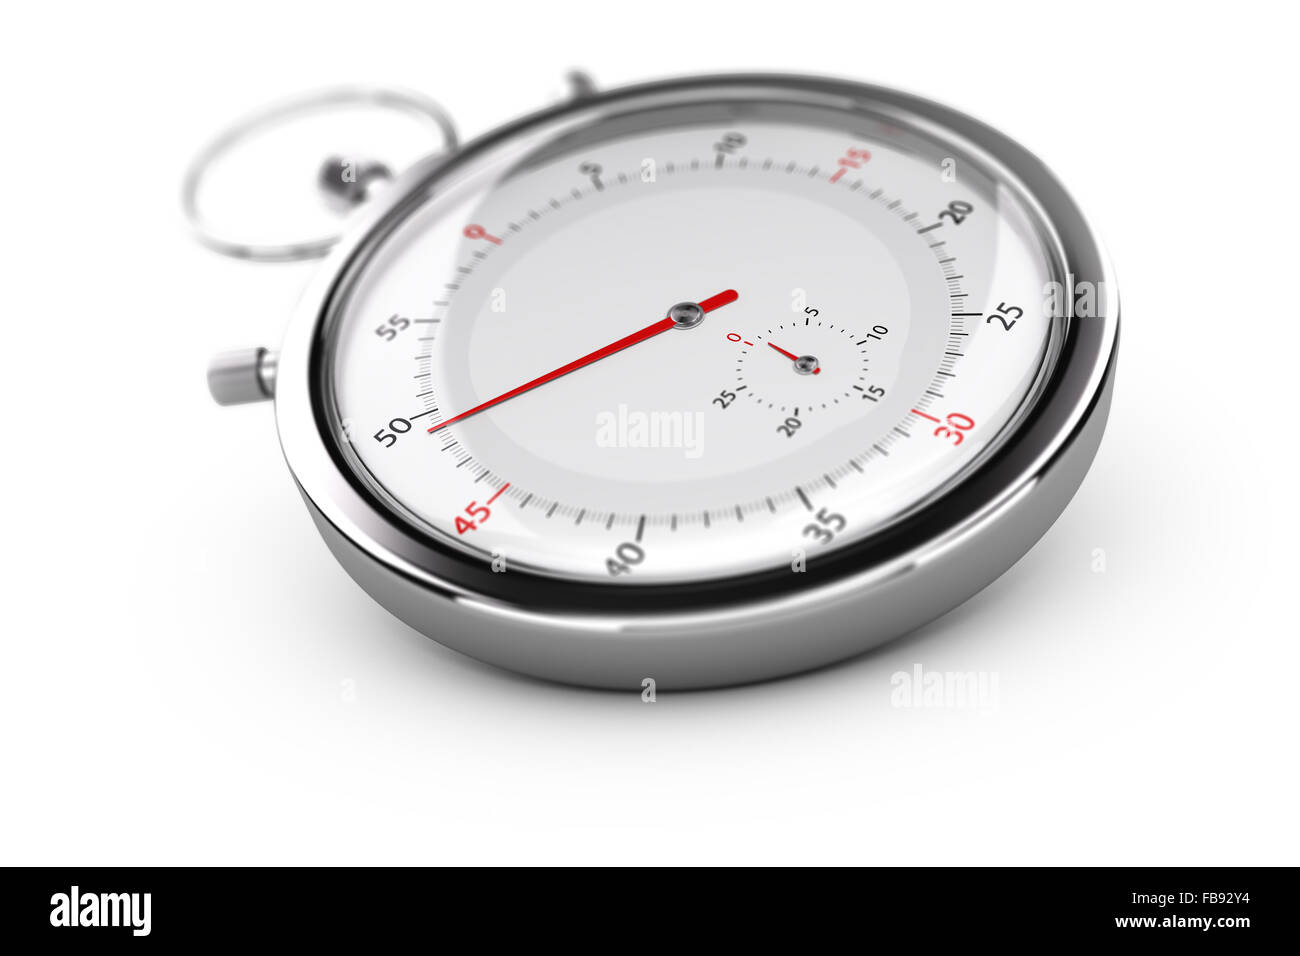 Chronograph with red needles over white background, blur effect. Concept of measurement or punctuality - Stock Image